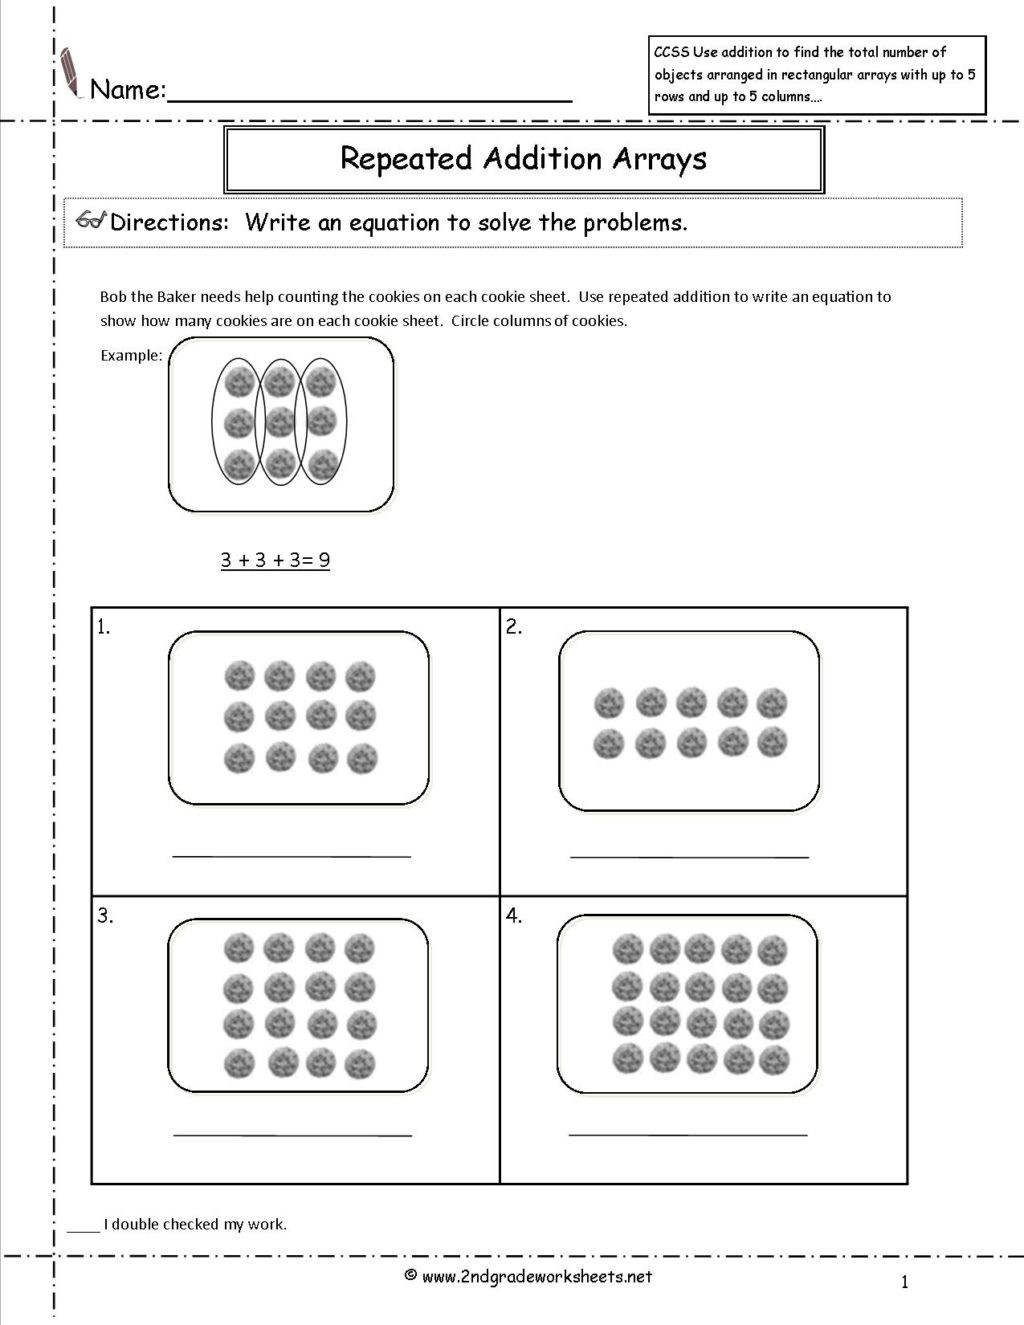 Arrays Worksheet 3rd Grade Worksheet Mon Core Math Worksheets 3rdrade